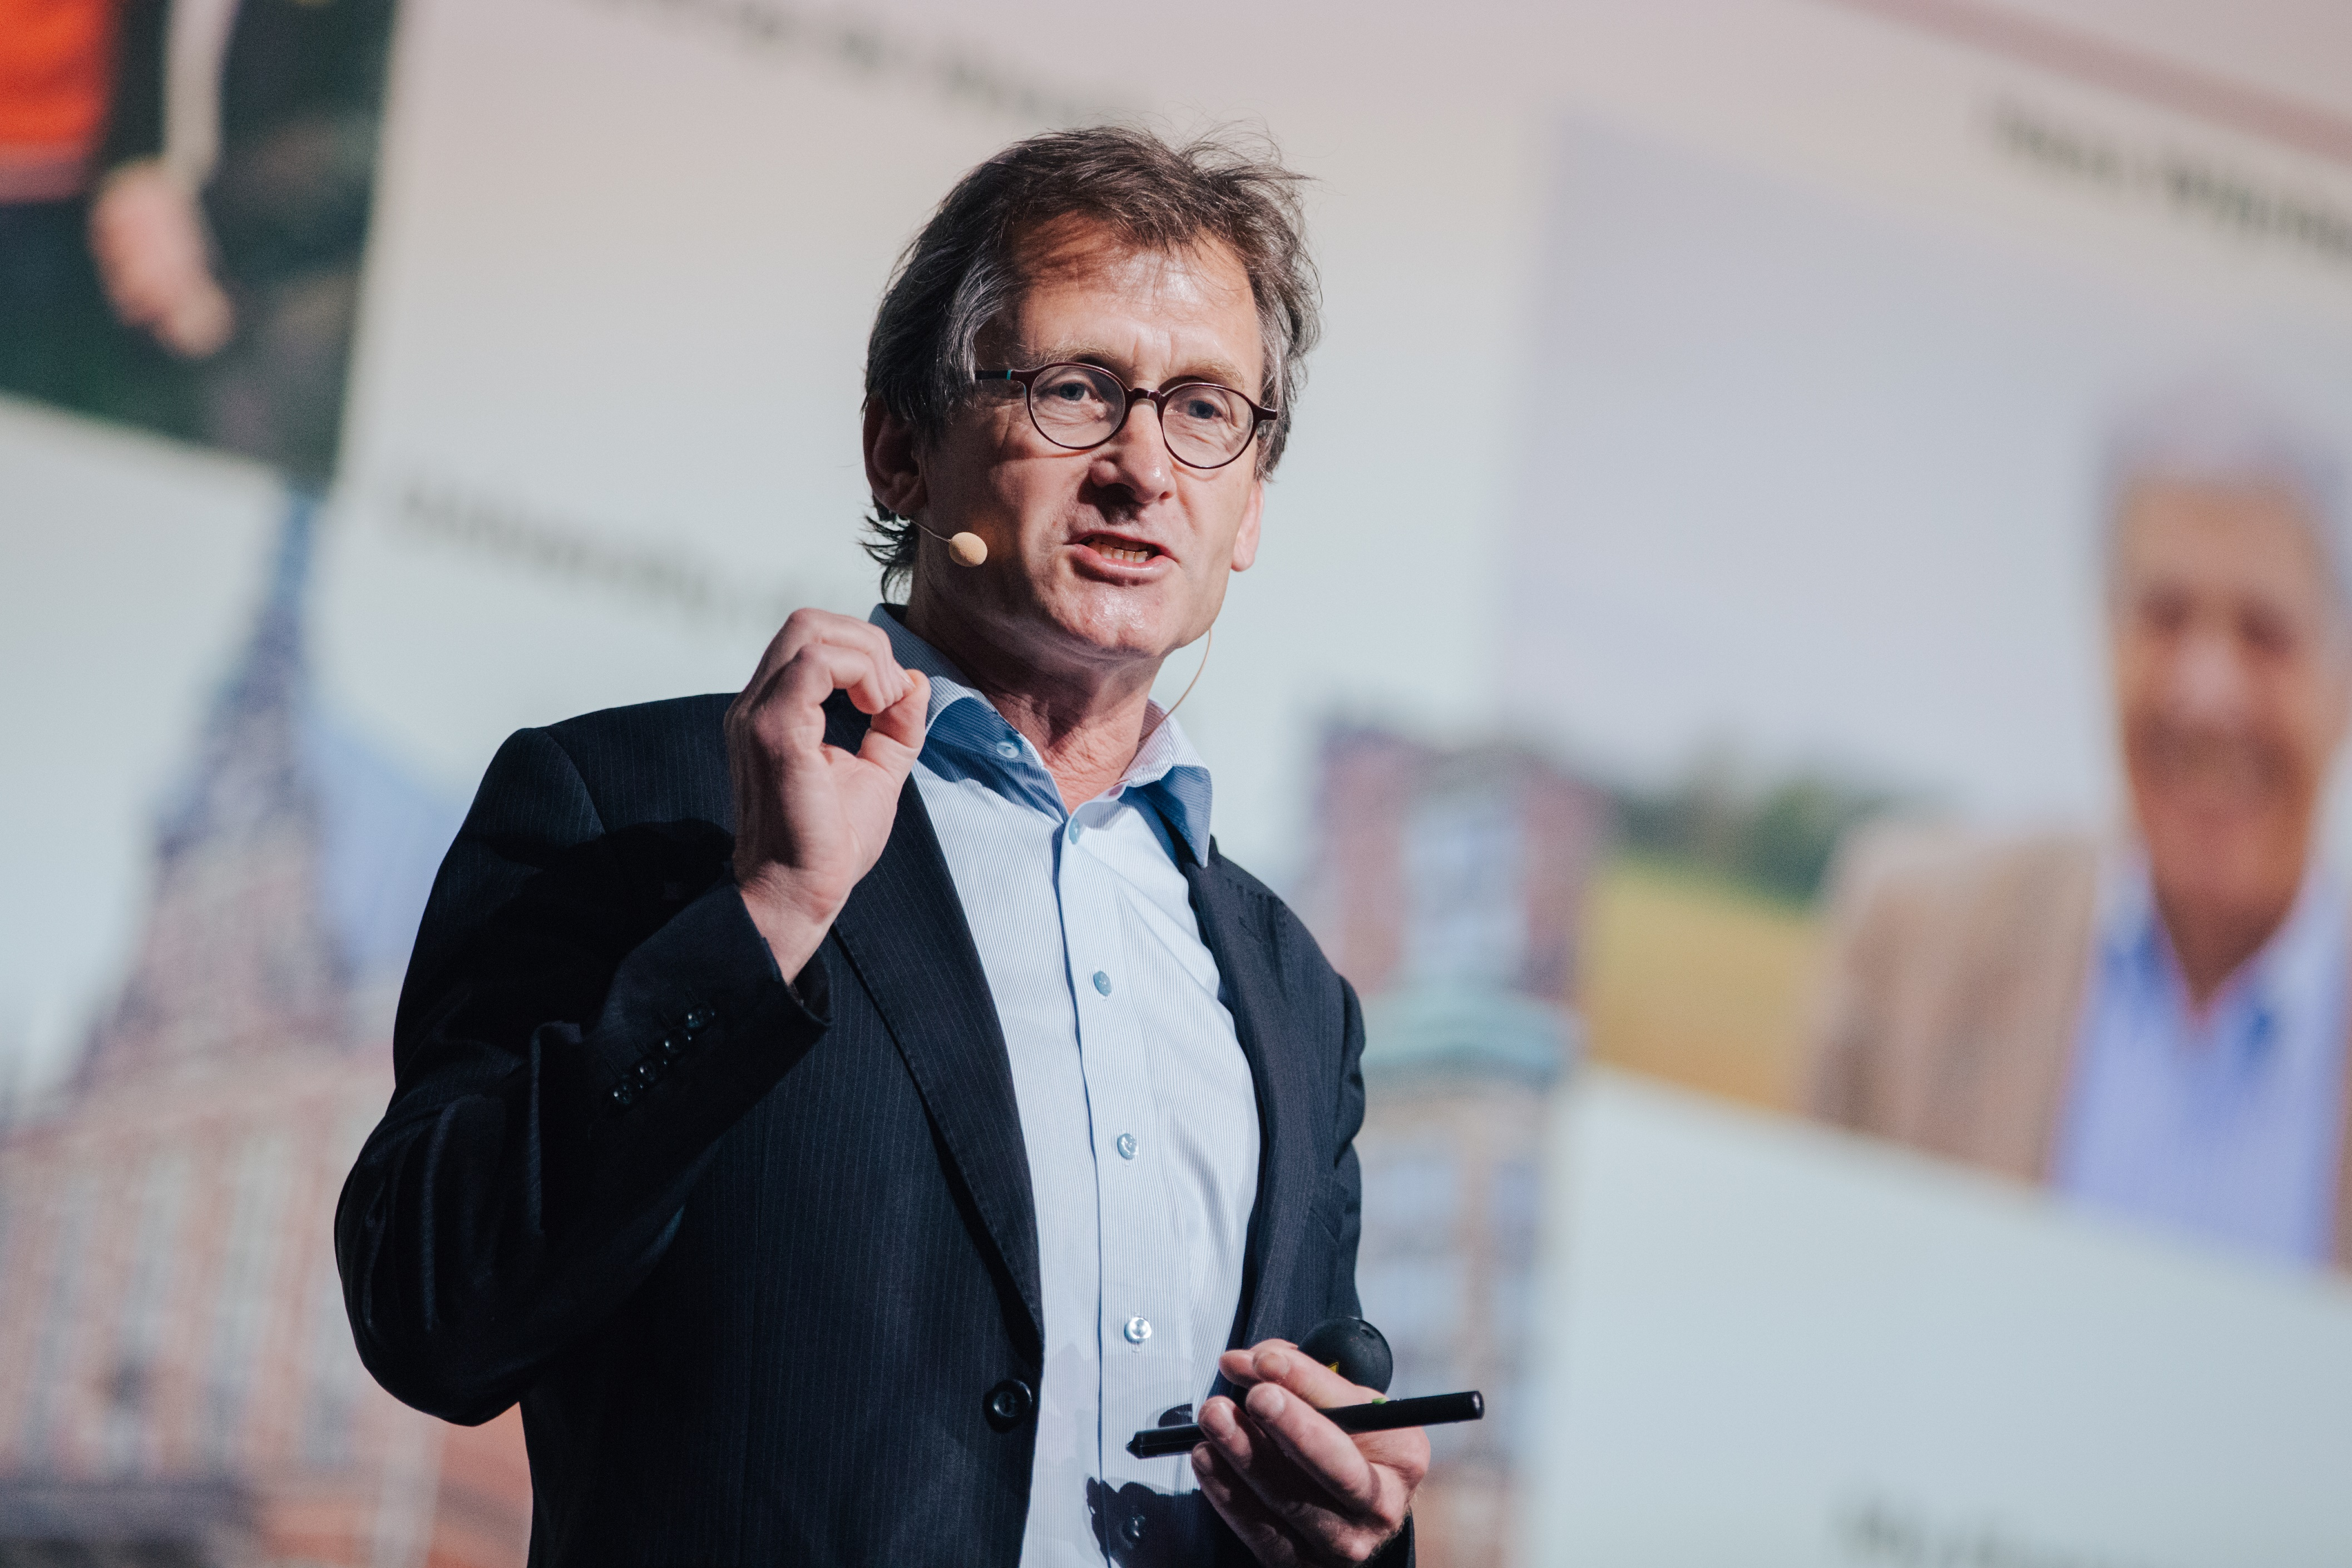 Ben Feringa giving the first lecture at the 67th Lindau Nobel Laureate Meeting. Picture/Credit: Julia Nimke/Lindau Nobel Laureate Meetings